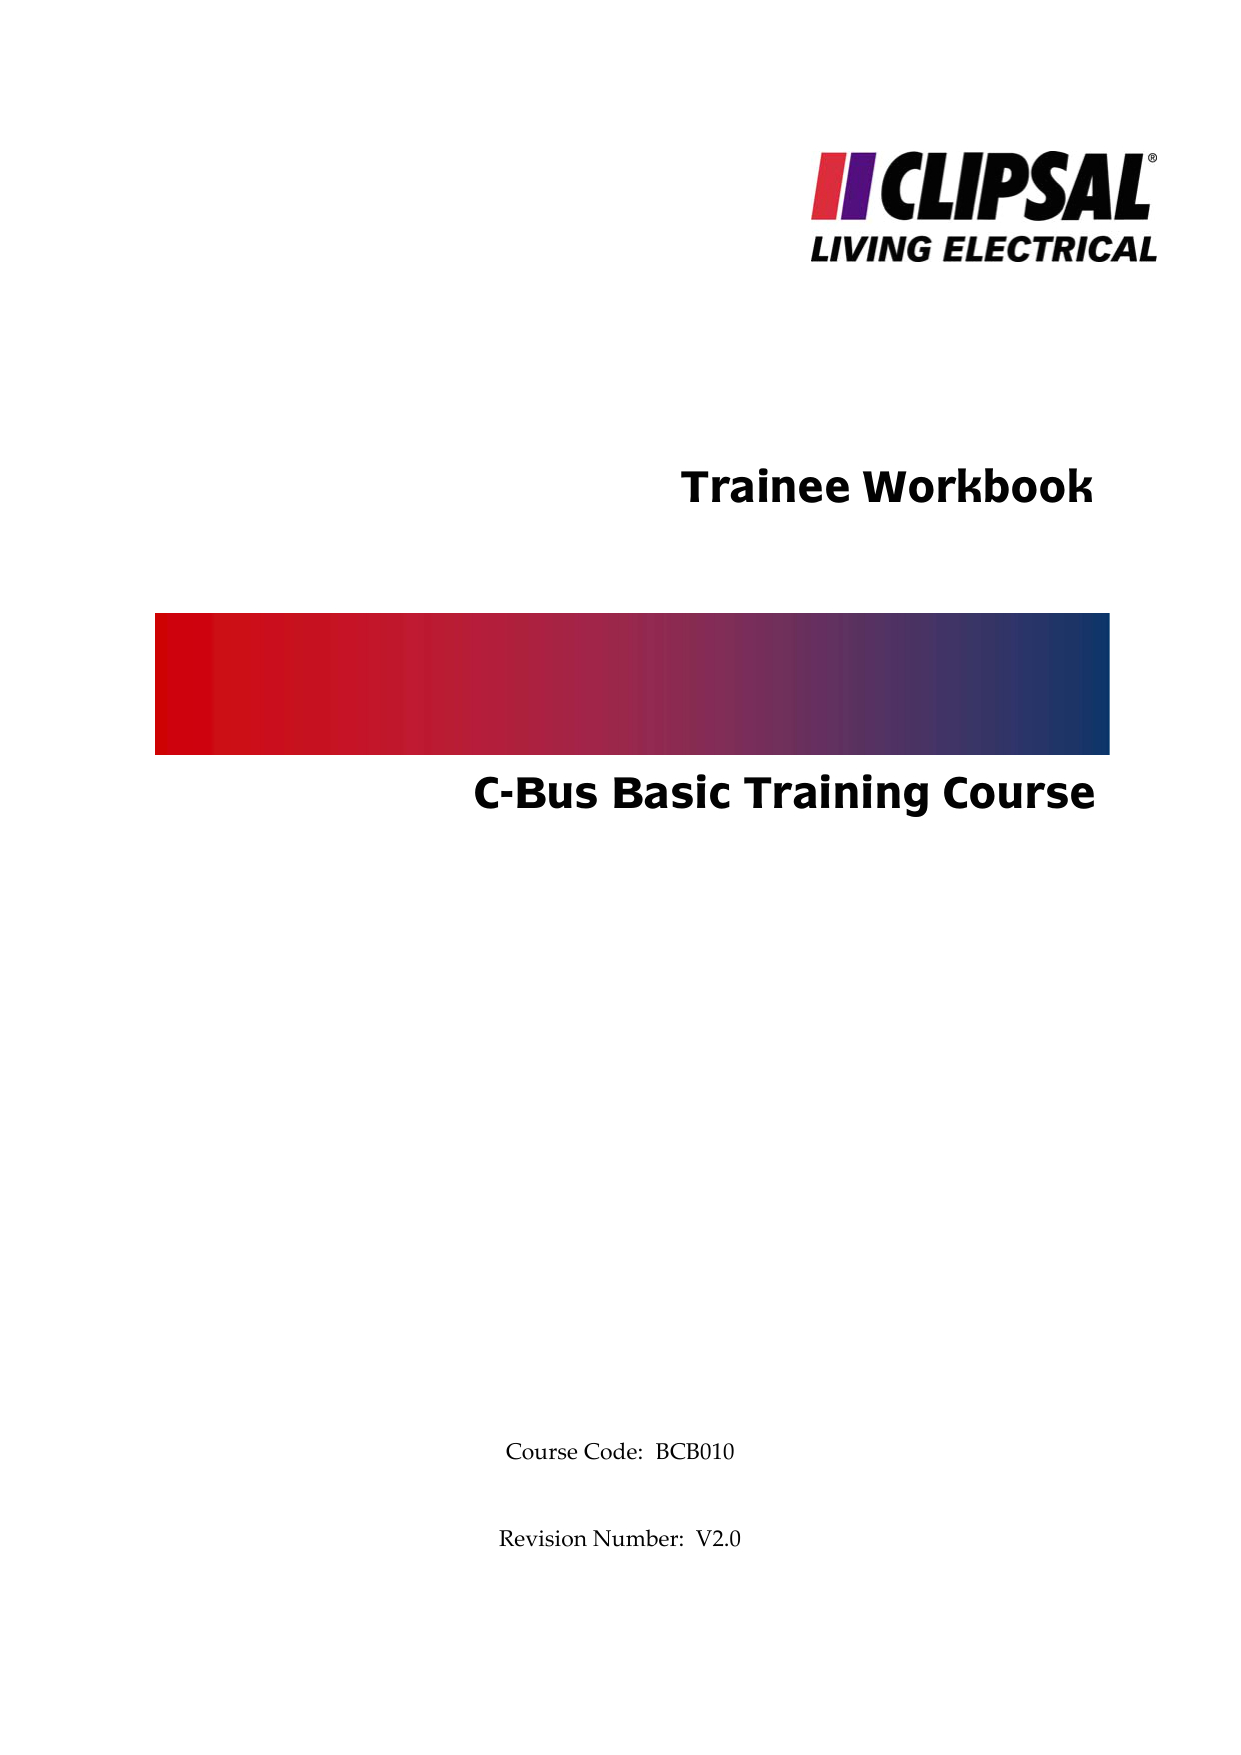 trainee workbook c bus basic training course